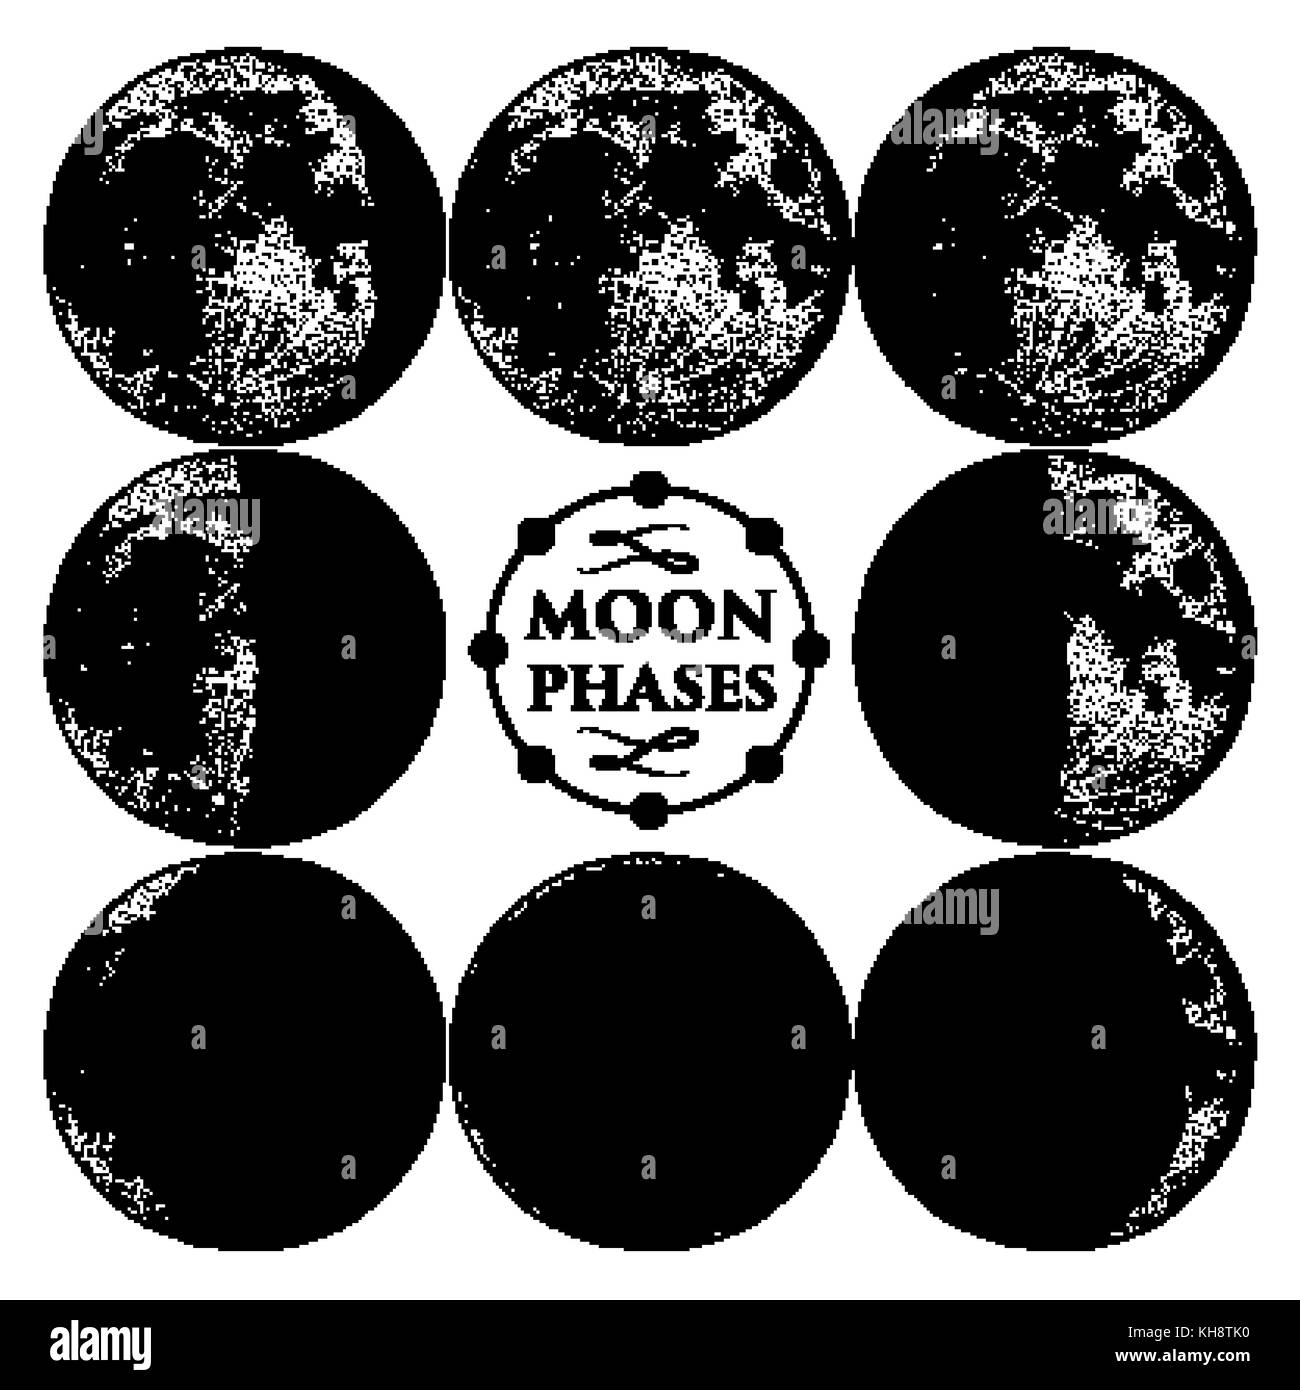 phases of the moon diagram to label sony cdx gt330 wiring circle stock photos and